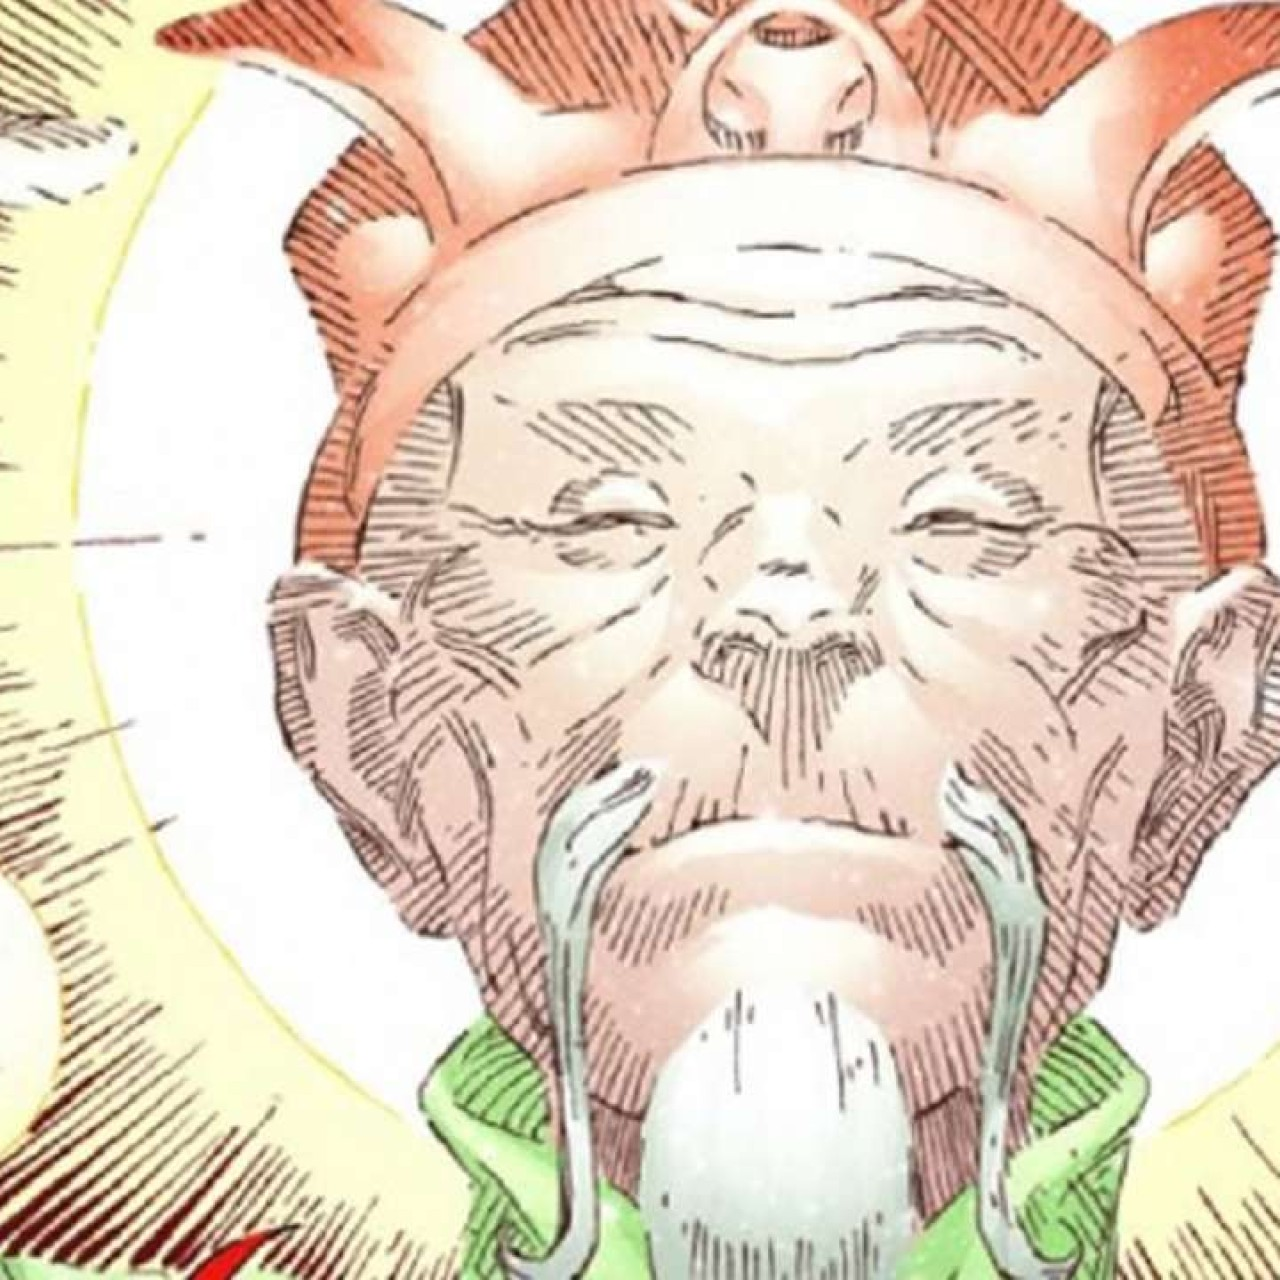 Has Doctor Strange sparked another race controversy in